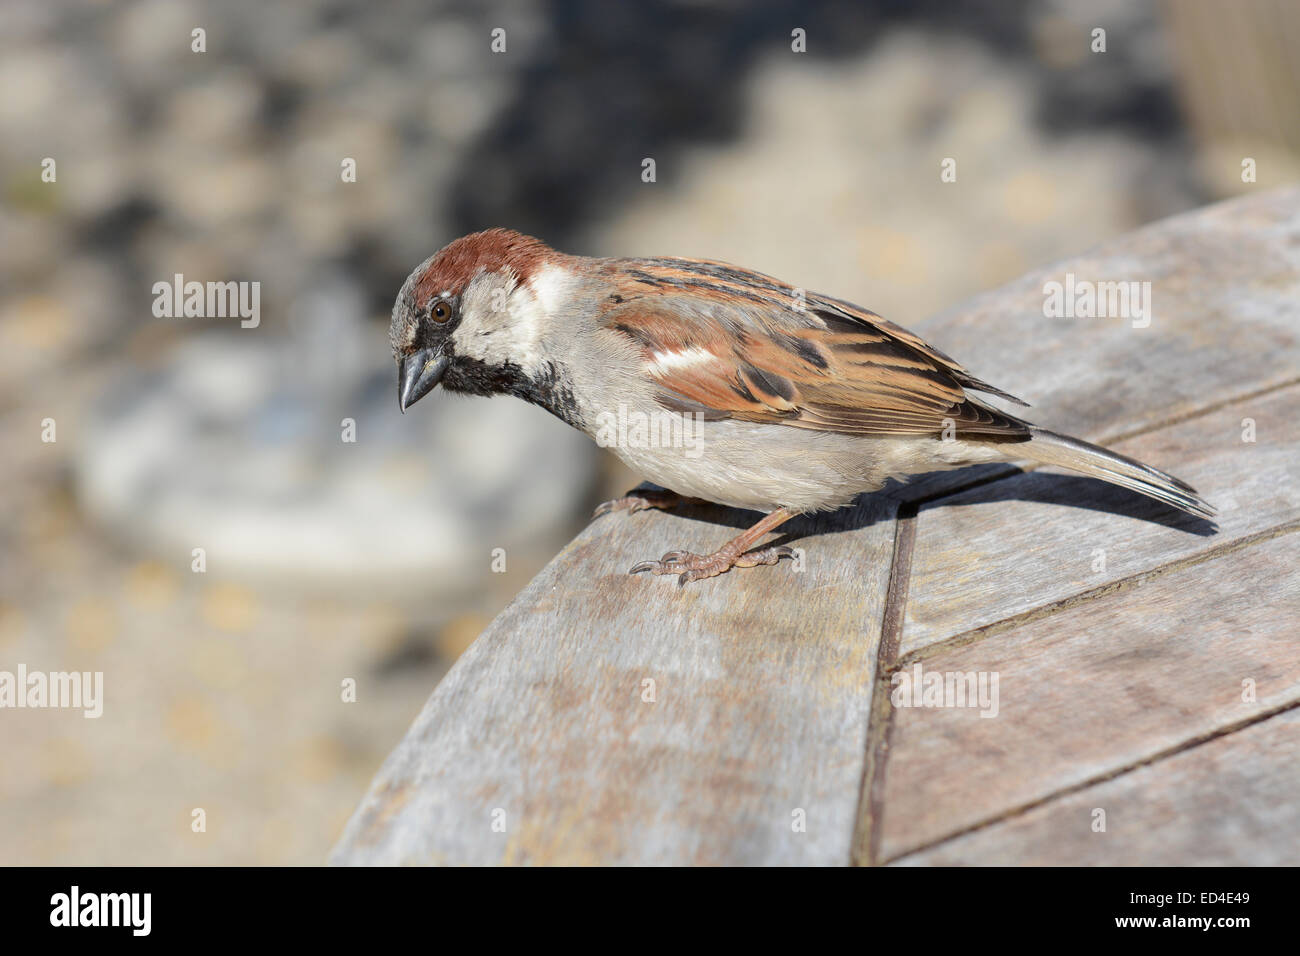 Cheeky sparrow on a cafe table Stock Photo